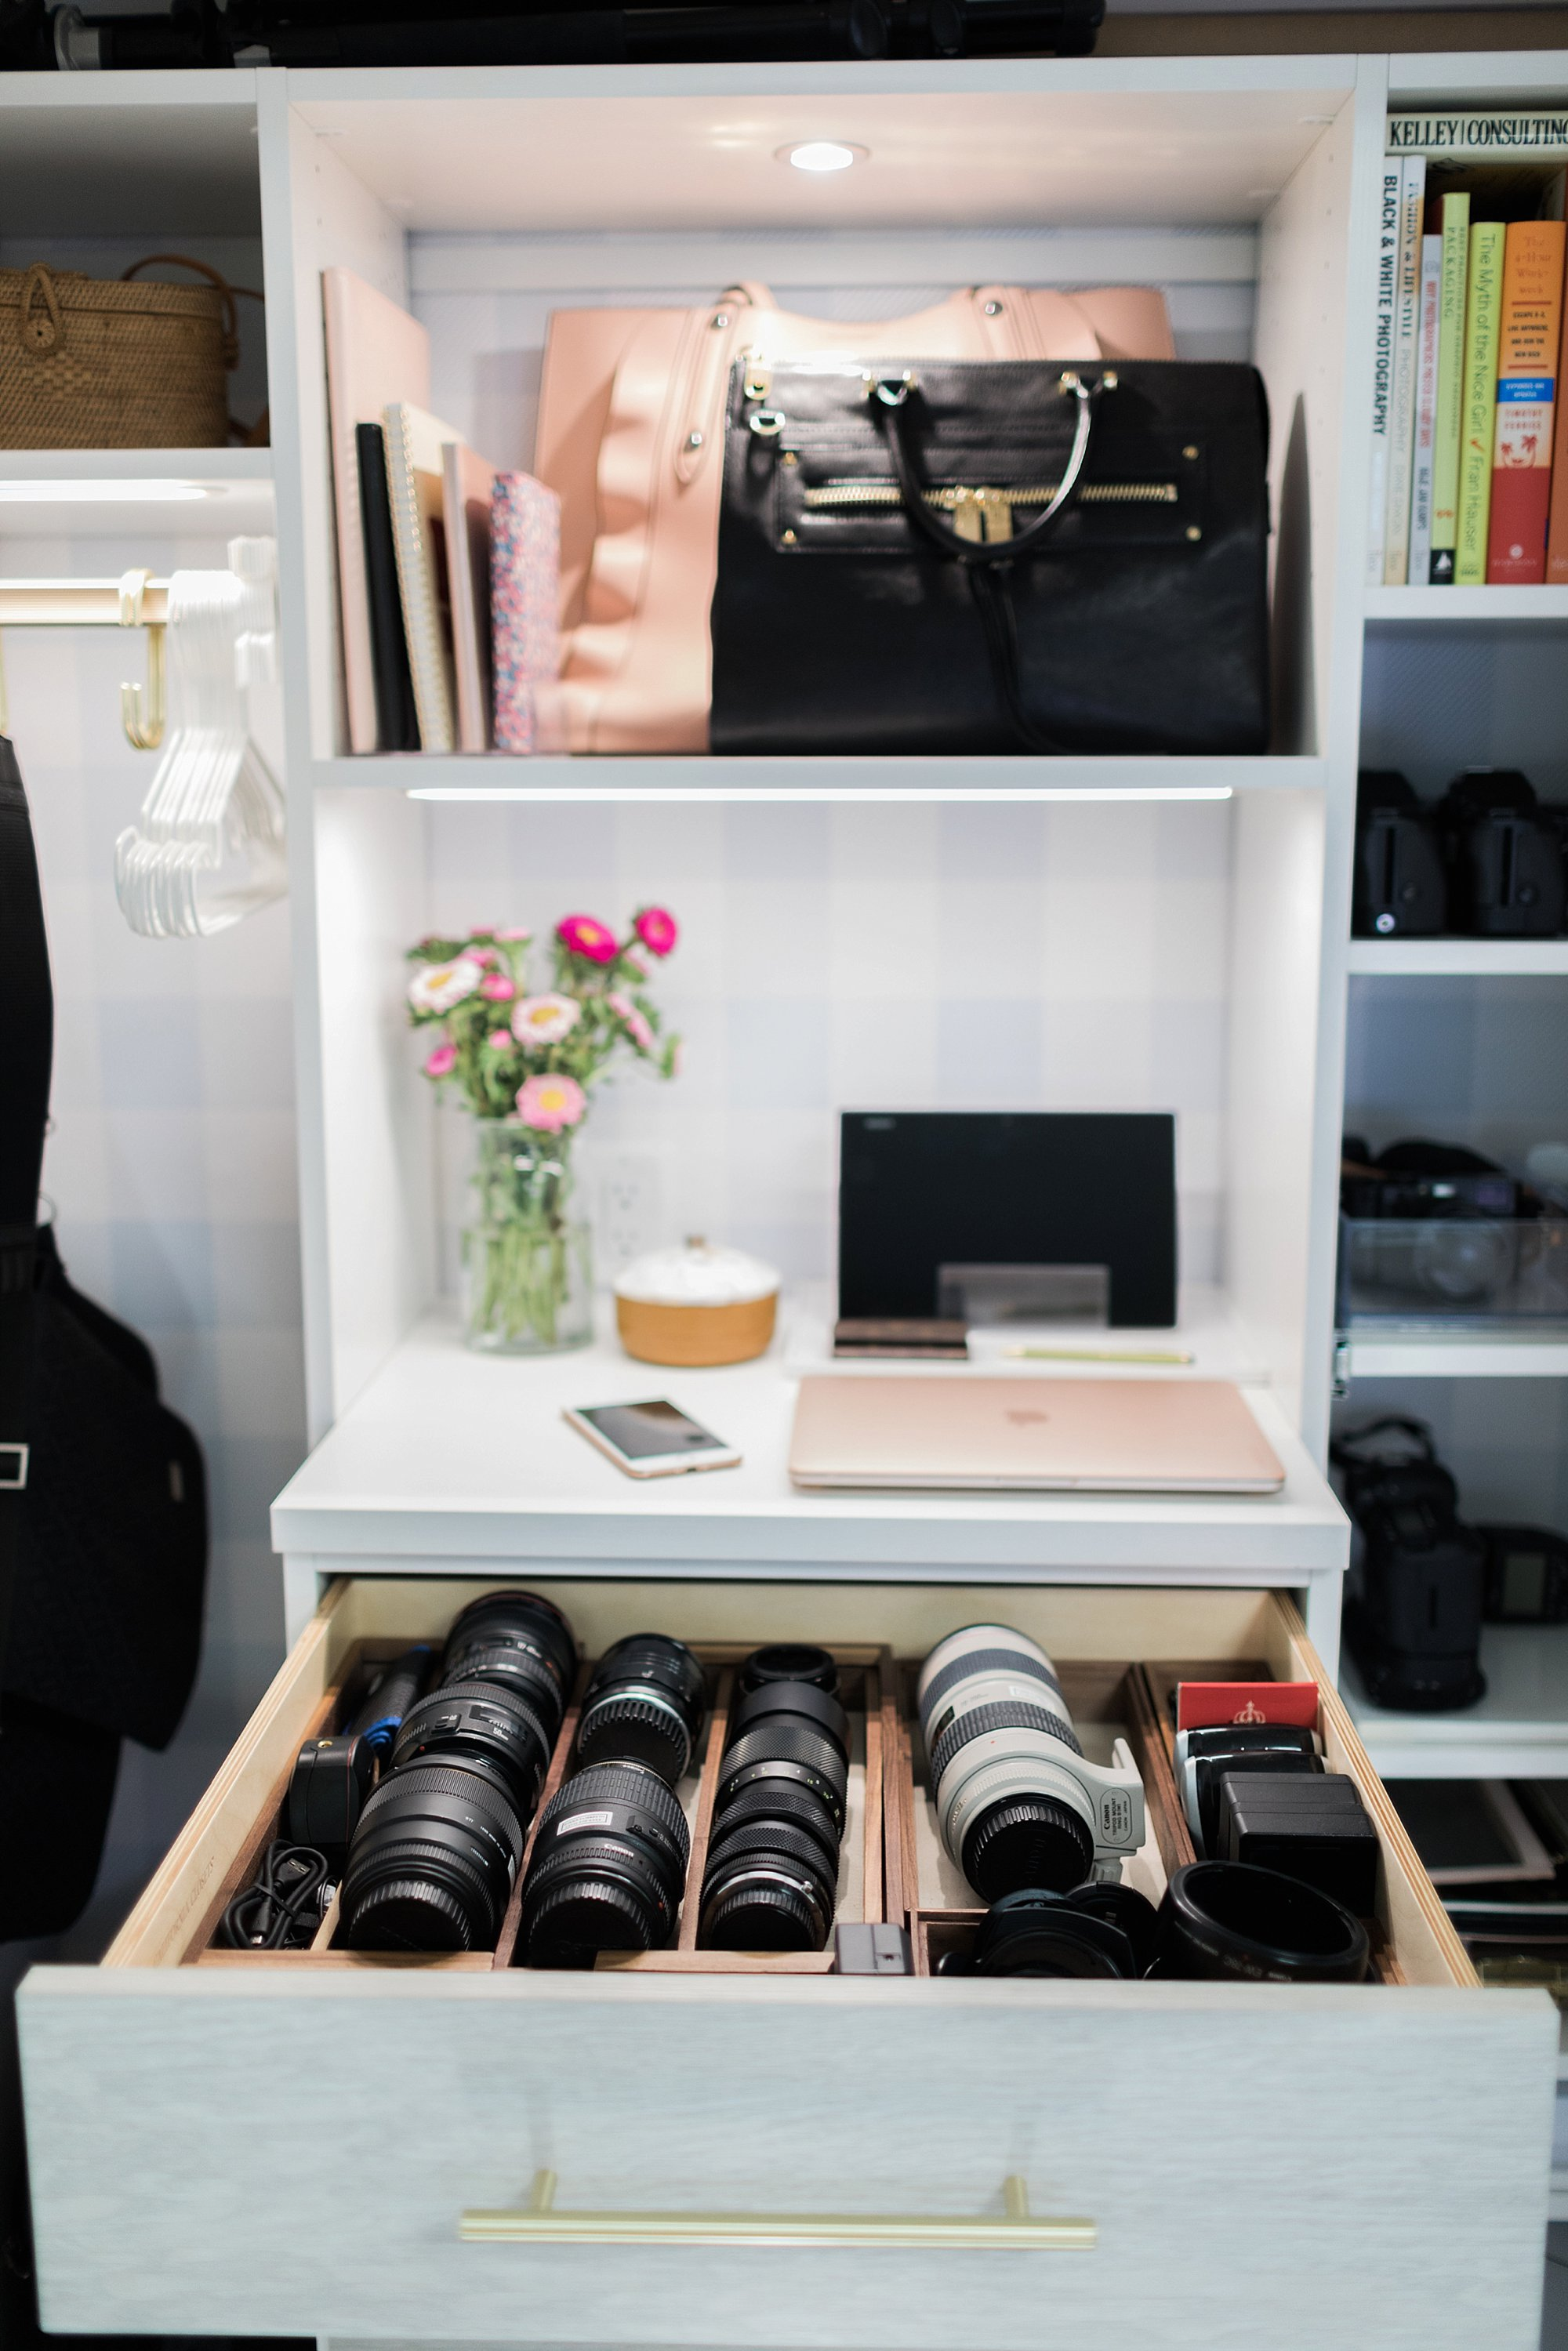 Camera Lens Drawer Lens Organization Blogger Photographer Office Closet And  How To Organize And Store Camera